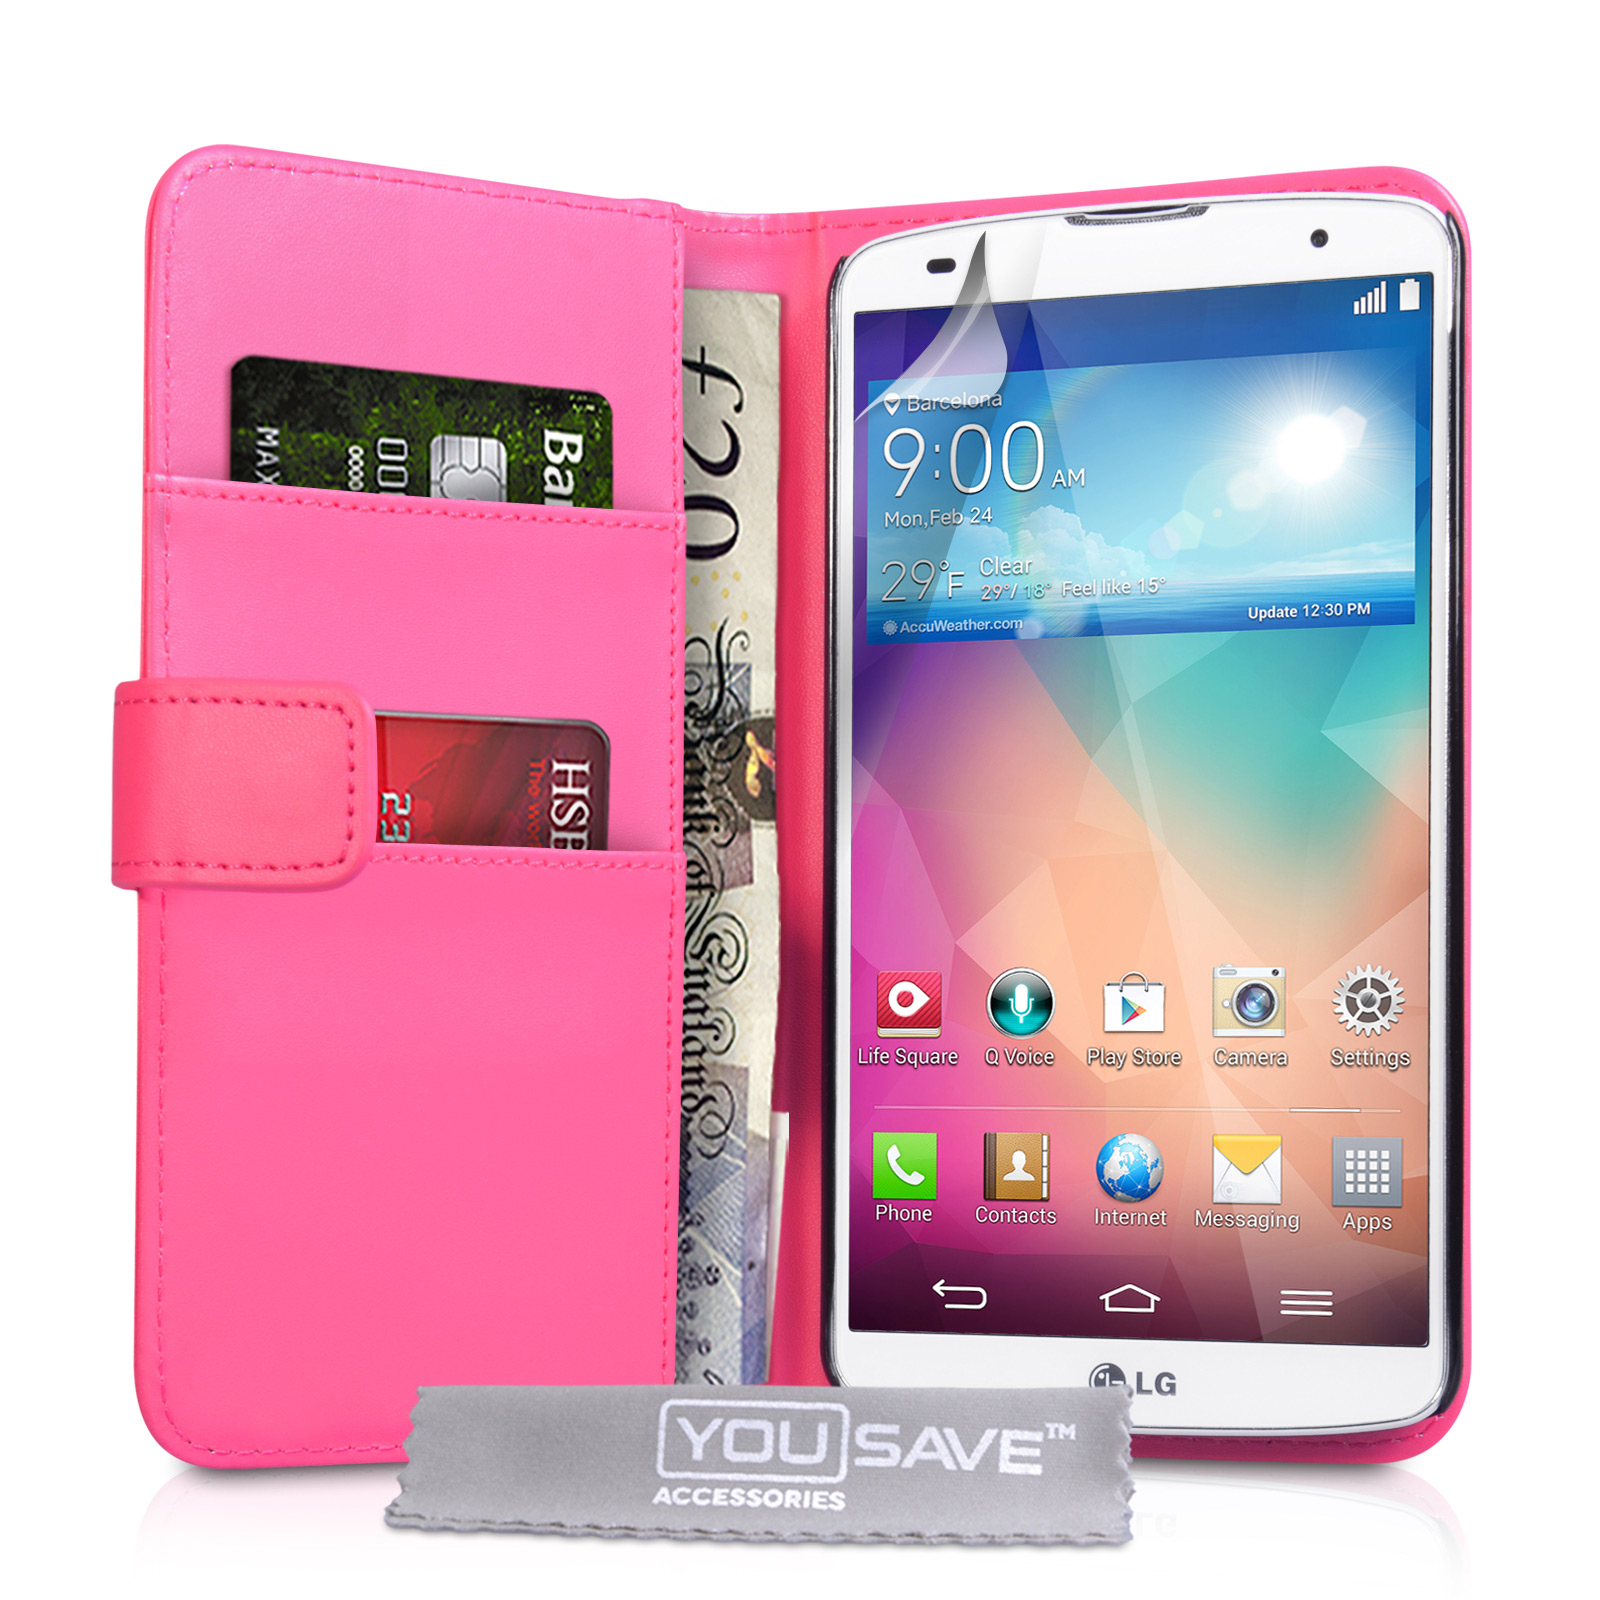 YouSave Accessories LG G Pro 2 Leather-Effect Wallet Case - Hot Pink